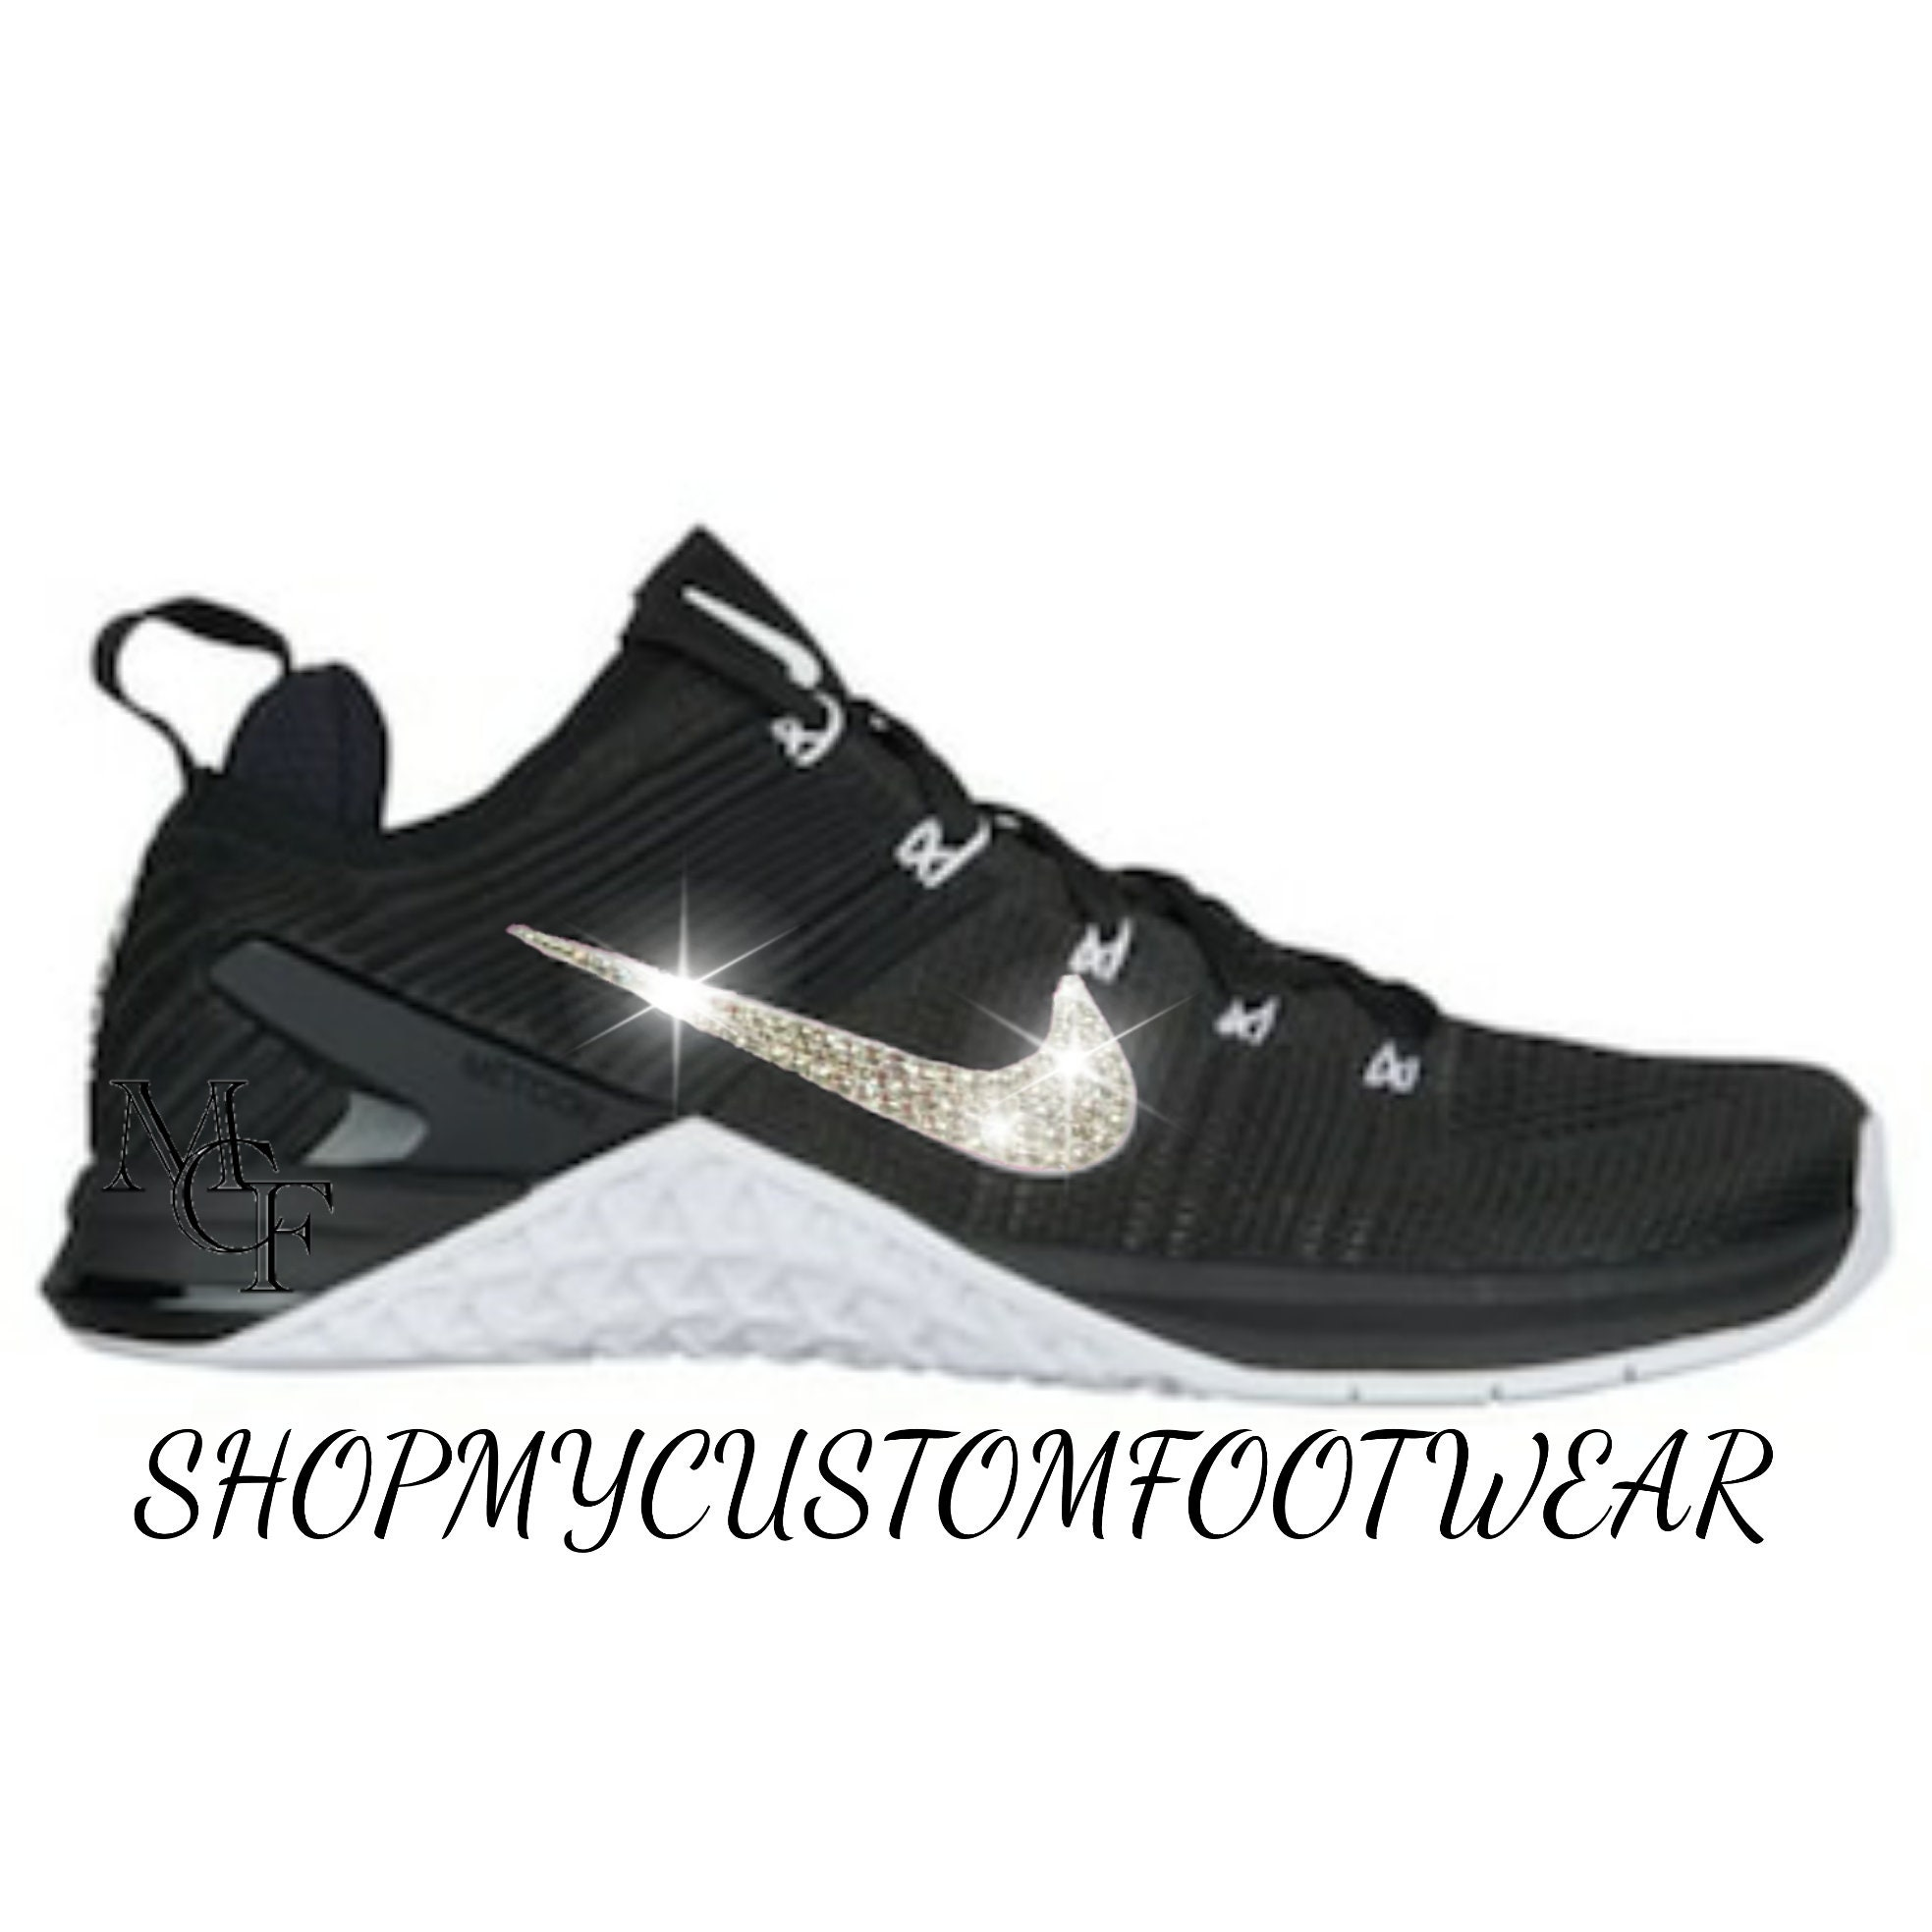 ... huge discount 7ac16 11e64 Nike Metcon DSX Flyknit 2 customized with  Swarovski Crystal ... c391fc28d4c2